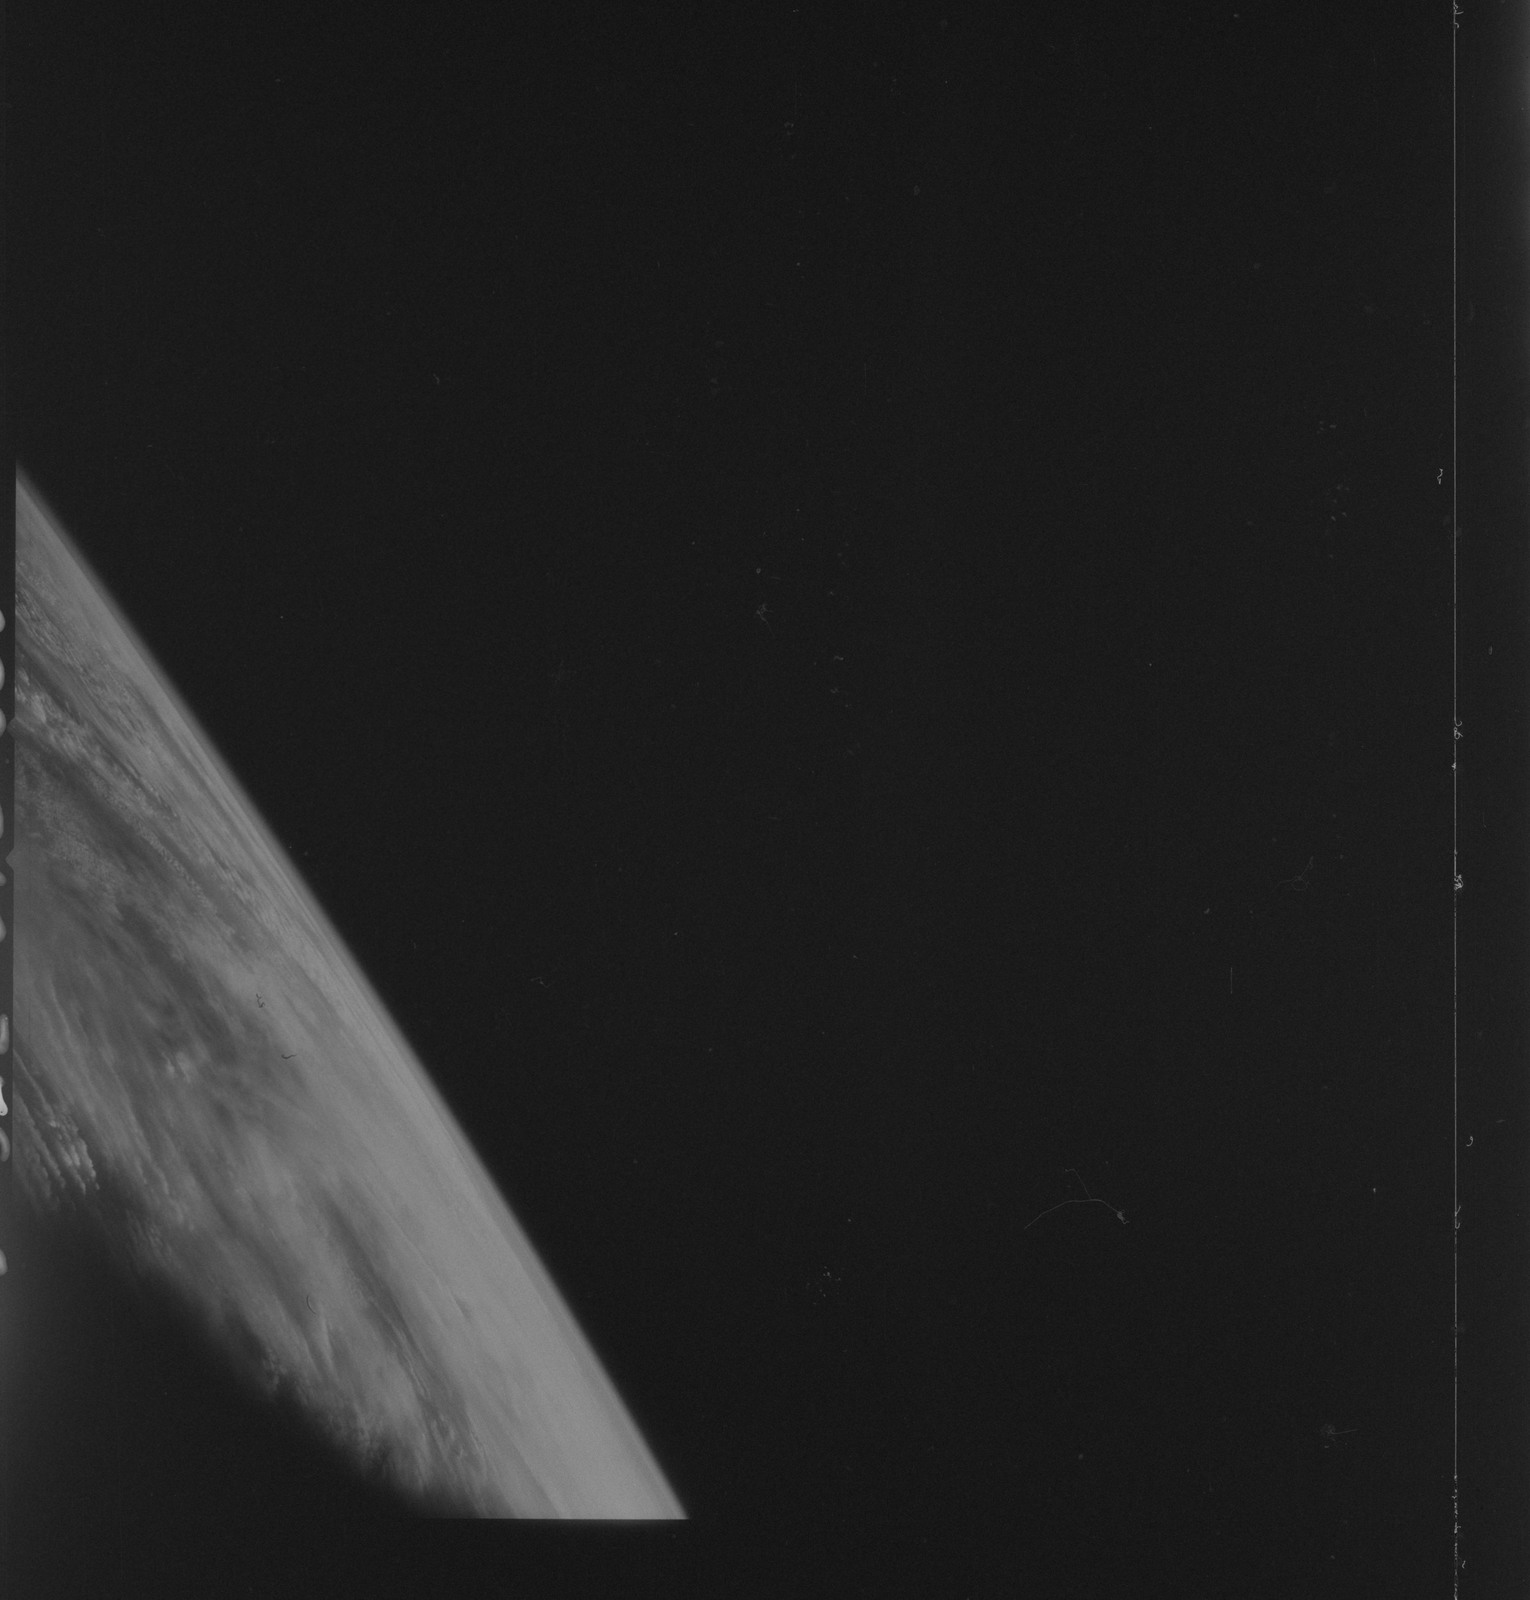 AS09-26C-3696C - Apollo 9 - Apollo 9 Mission image - S0-65 Multispectral Photography - Earth limb and clouds